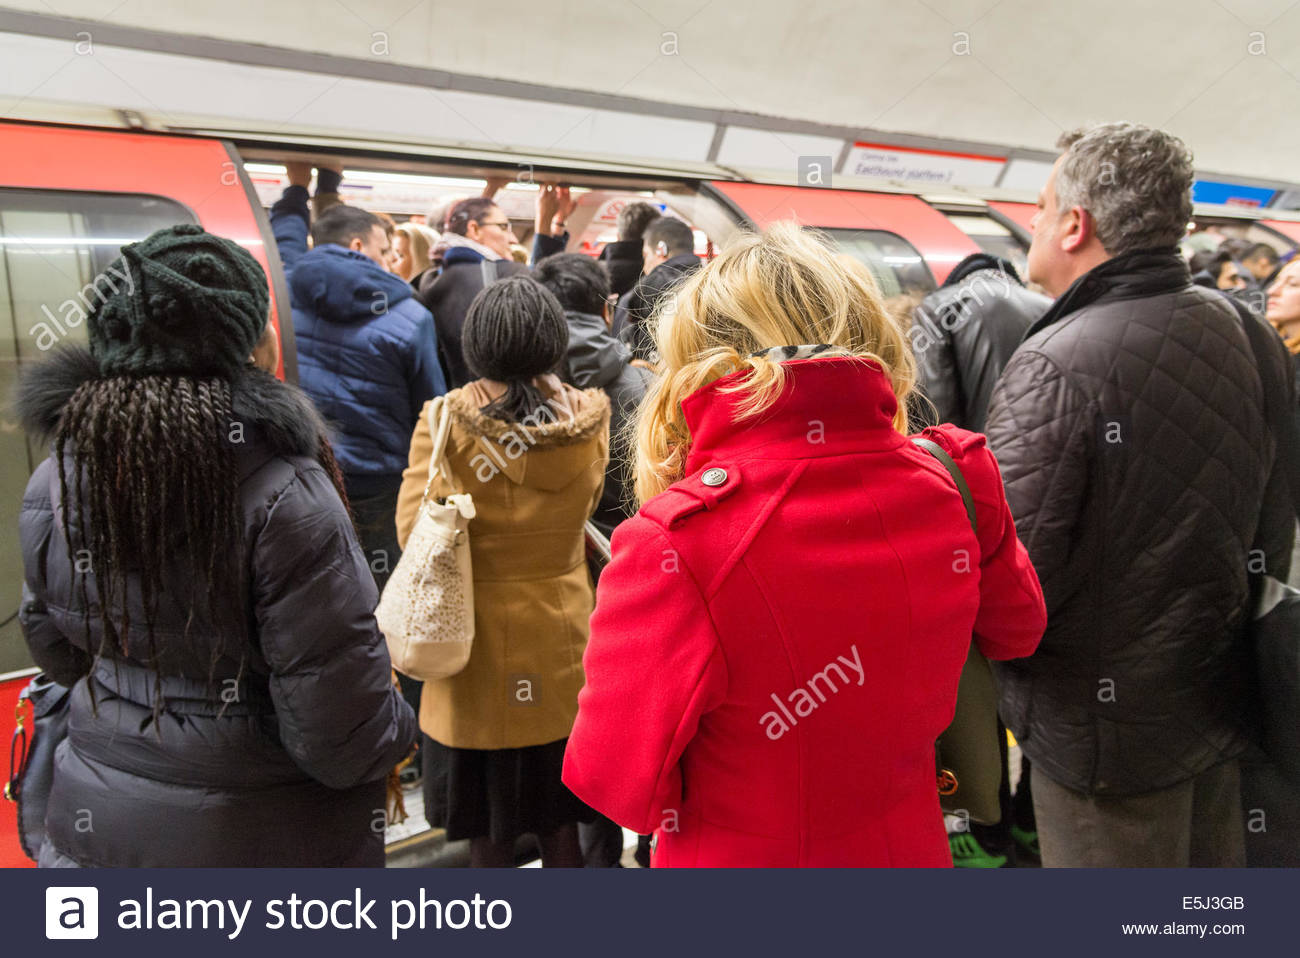 Commuters trying to board overcrowded Central Line London Underground carriage during the morning rush hour, England, - Stock Image